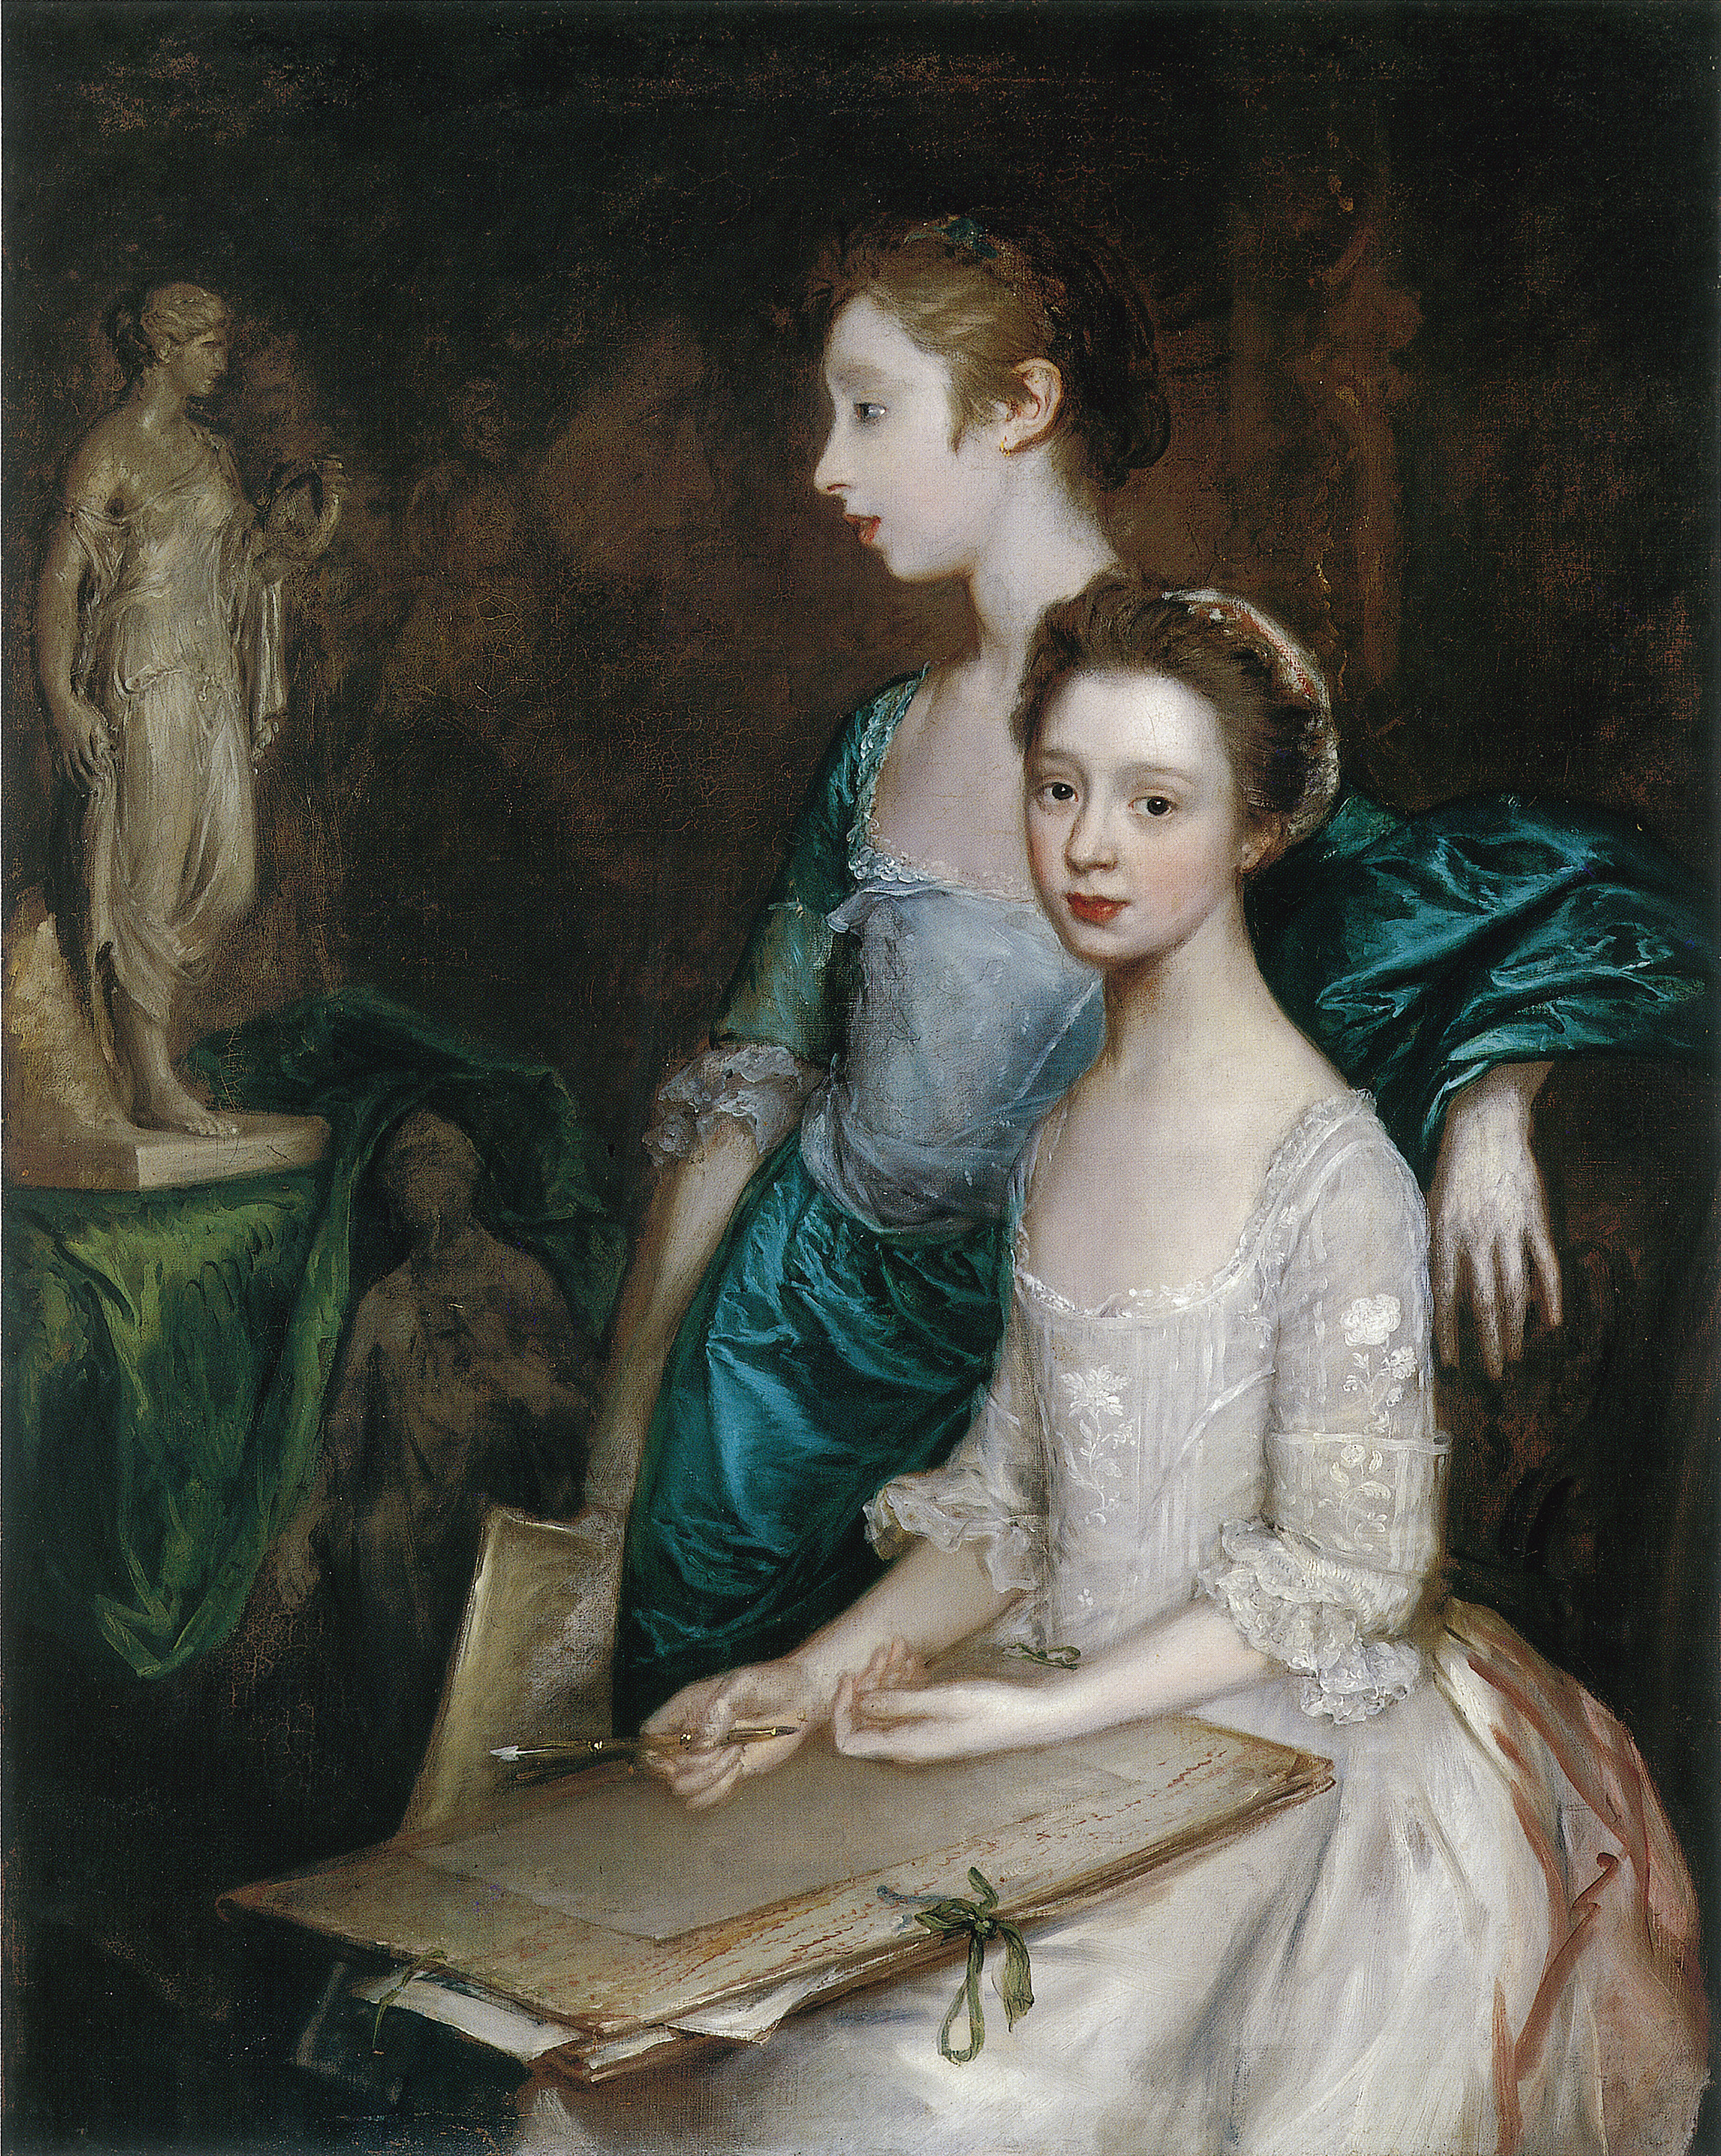 Mary and Margaret Gainsborough, the Artist's Daughters, at their Drawing by Thomas Gainsborough